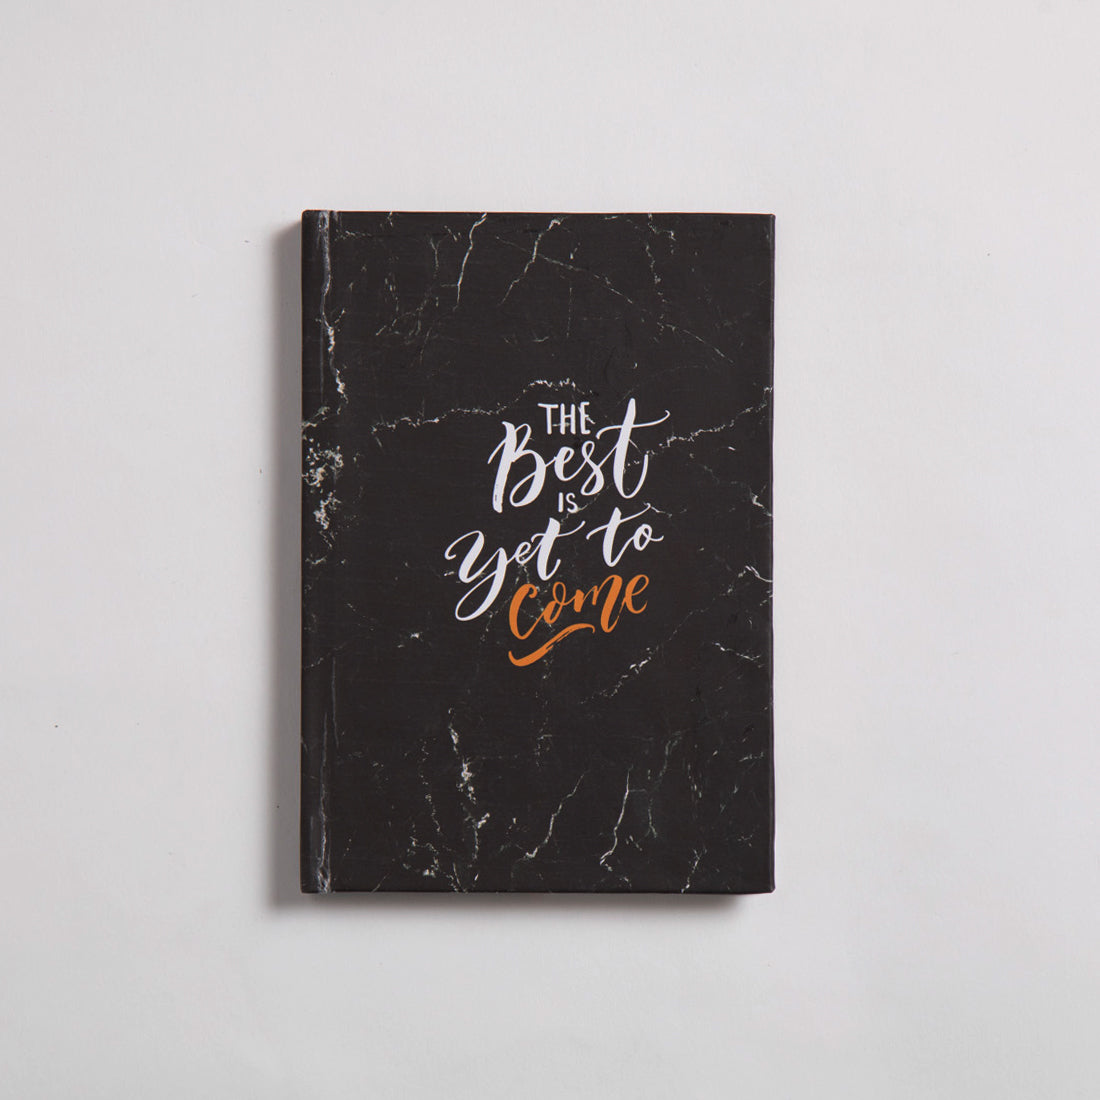 Marble Hardcover Notebook A6 Size